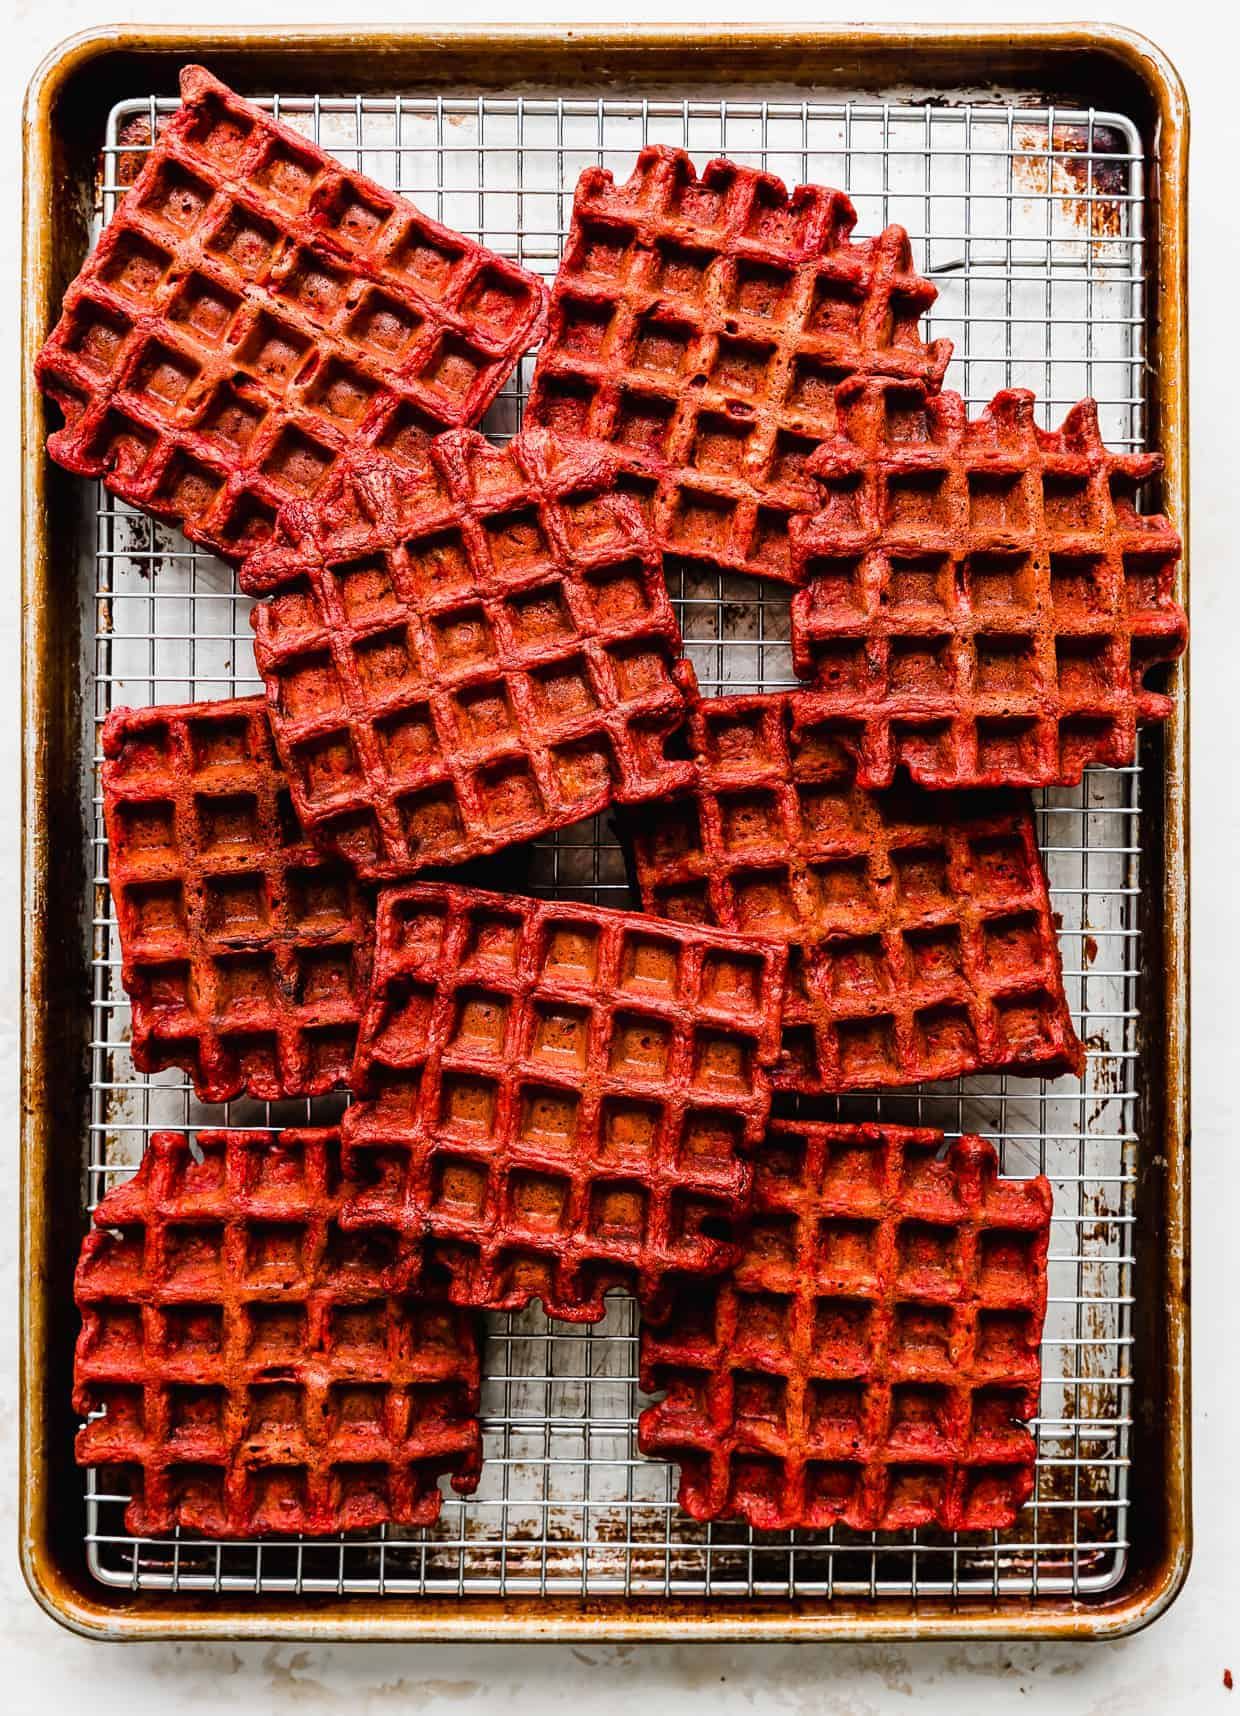 A baking sheet topped with a wire rack and square red velvet waffles on the rack.